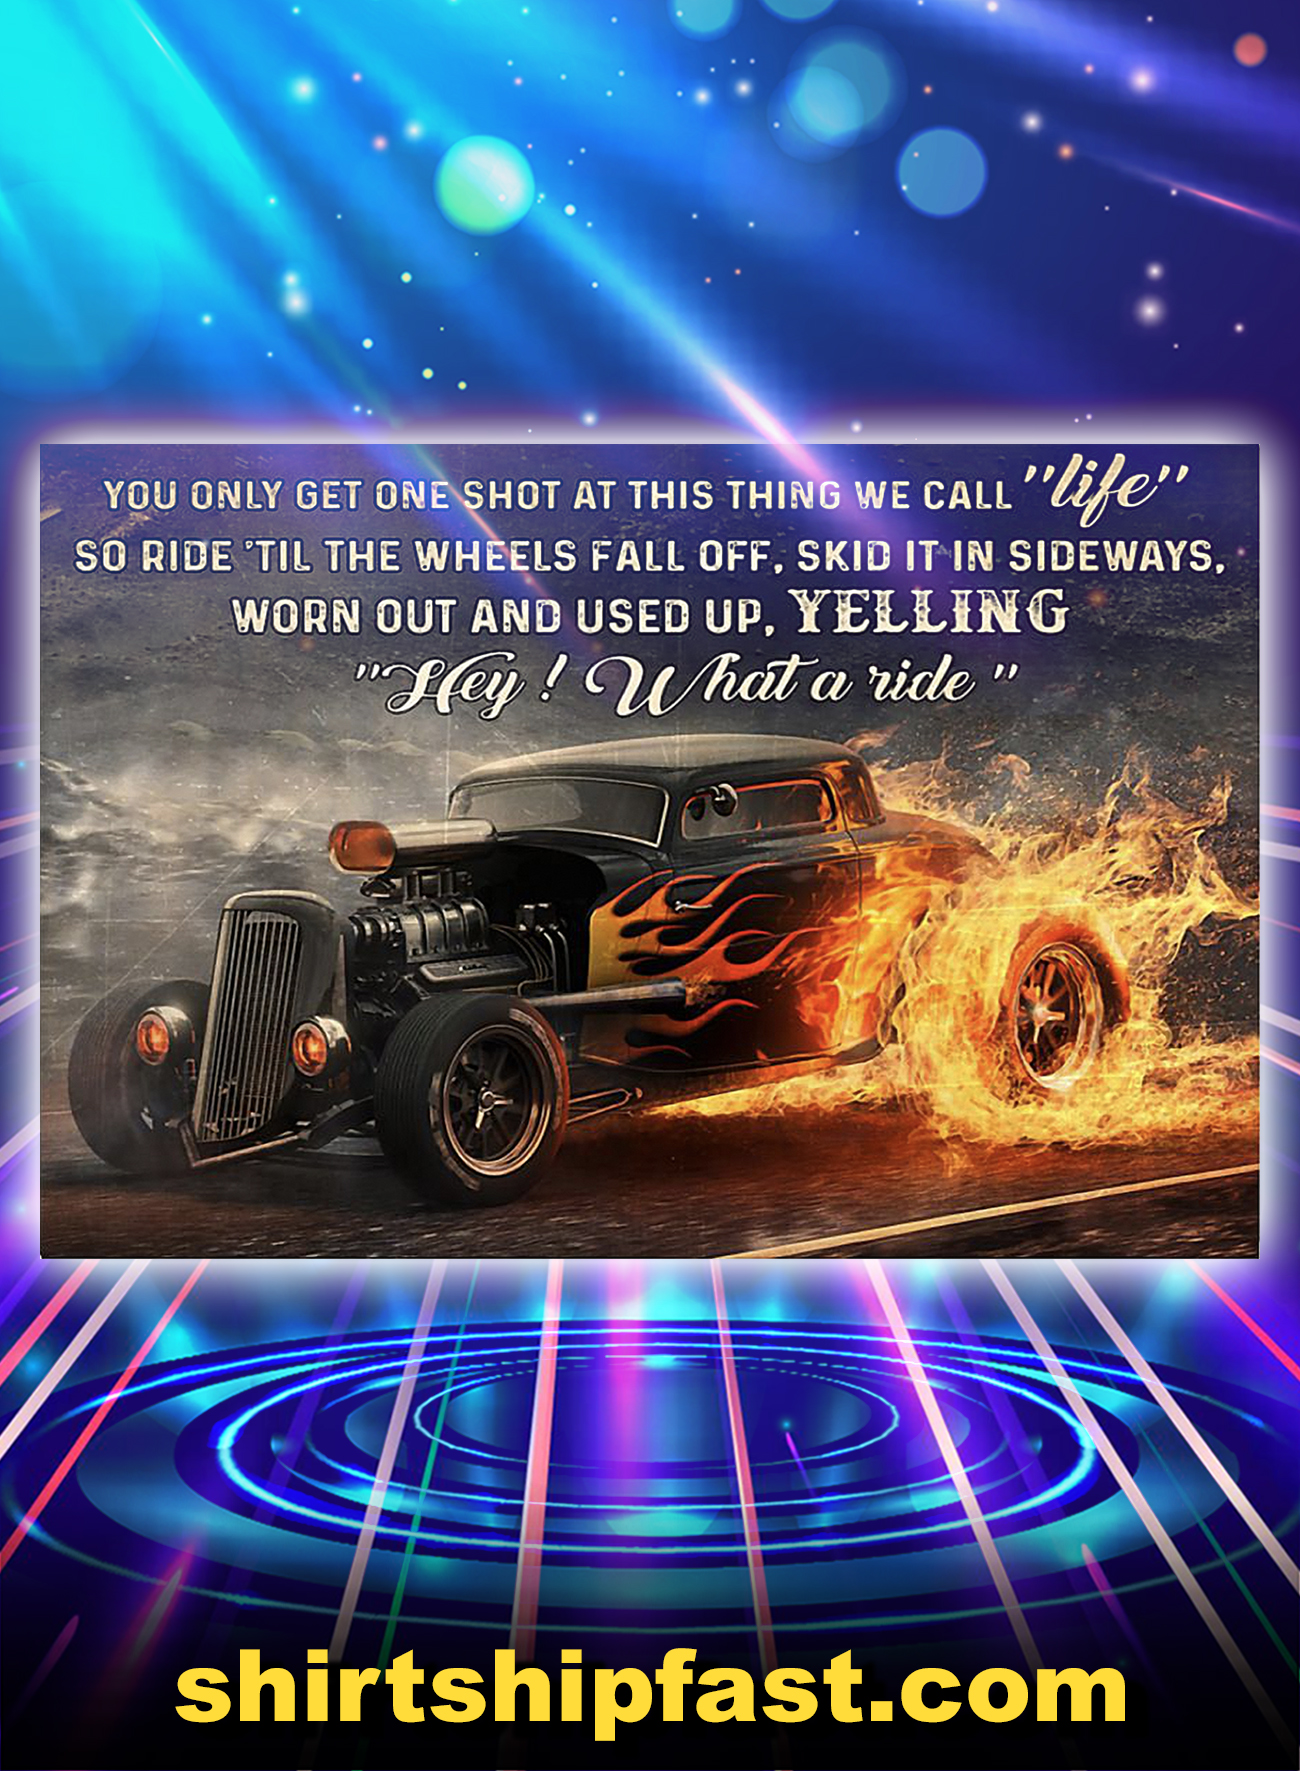 Hot rod what a ride poster